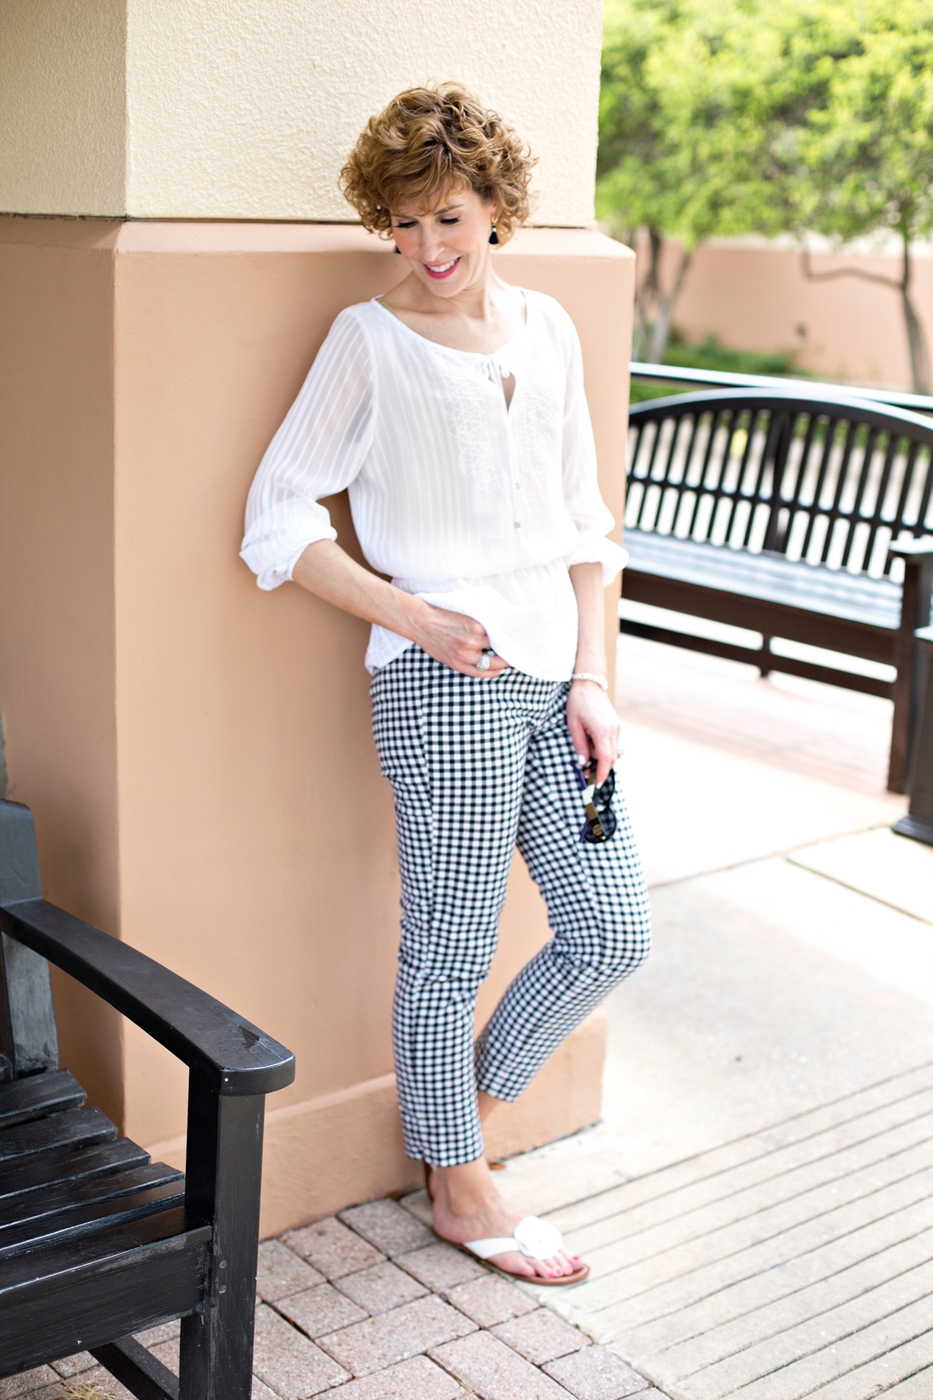 Party in the Picnic Print! | Get on the Gingham Trend